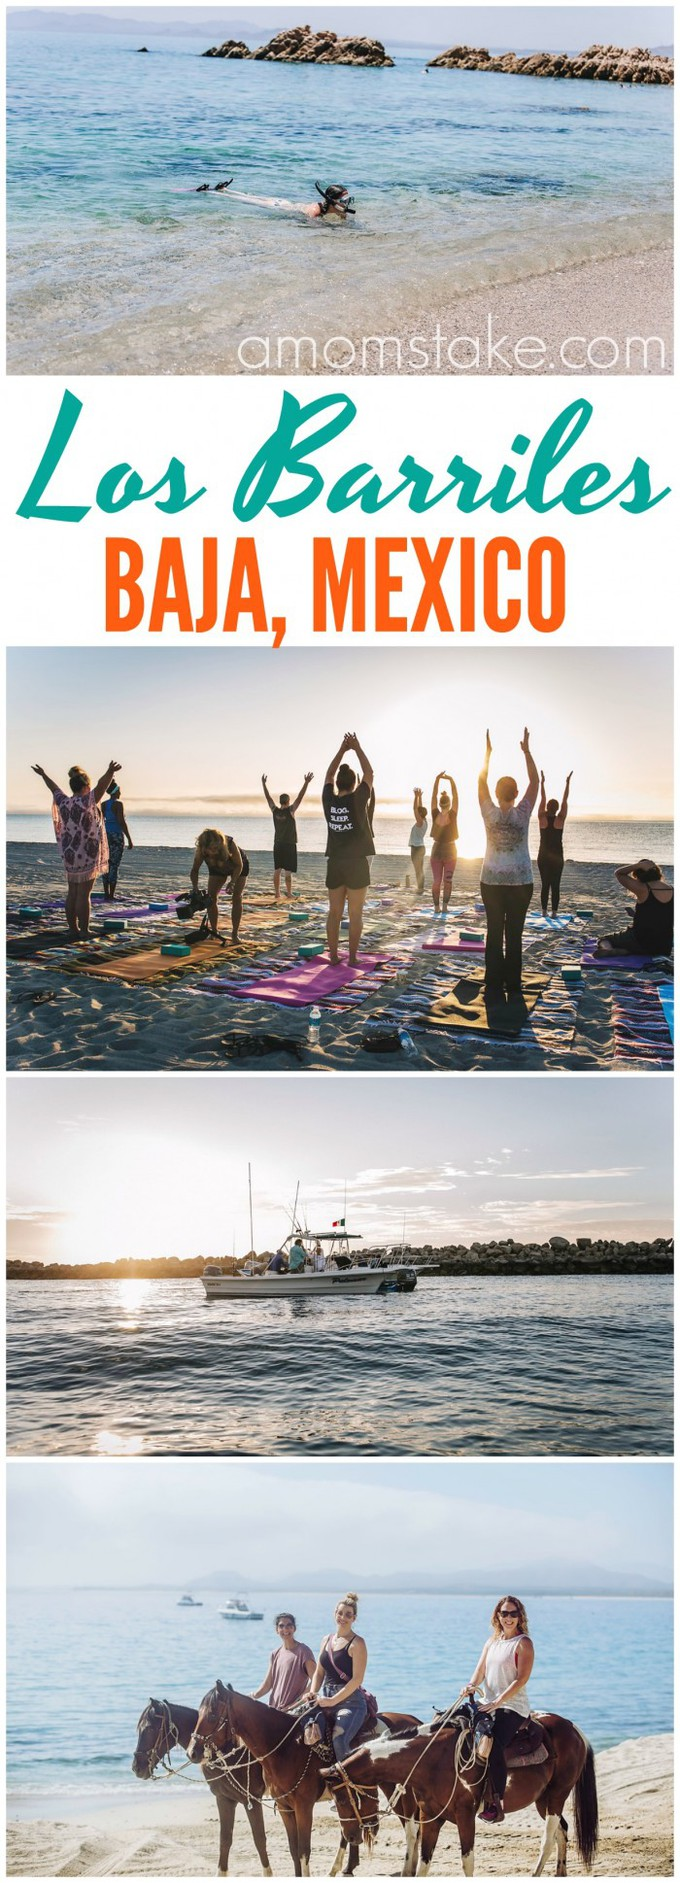 8 reasons to visit Los Barriles in the Baja California Sur peninsula in Mexico. Make this your next travel vacation destination! #travel #familytravel #vacation #destinationguide #travelguide